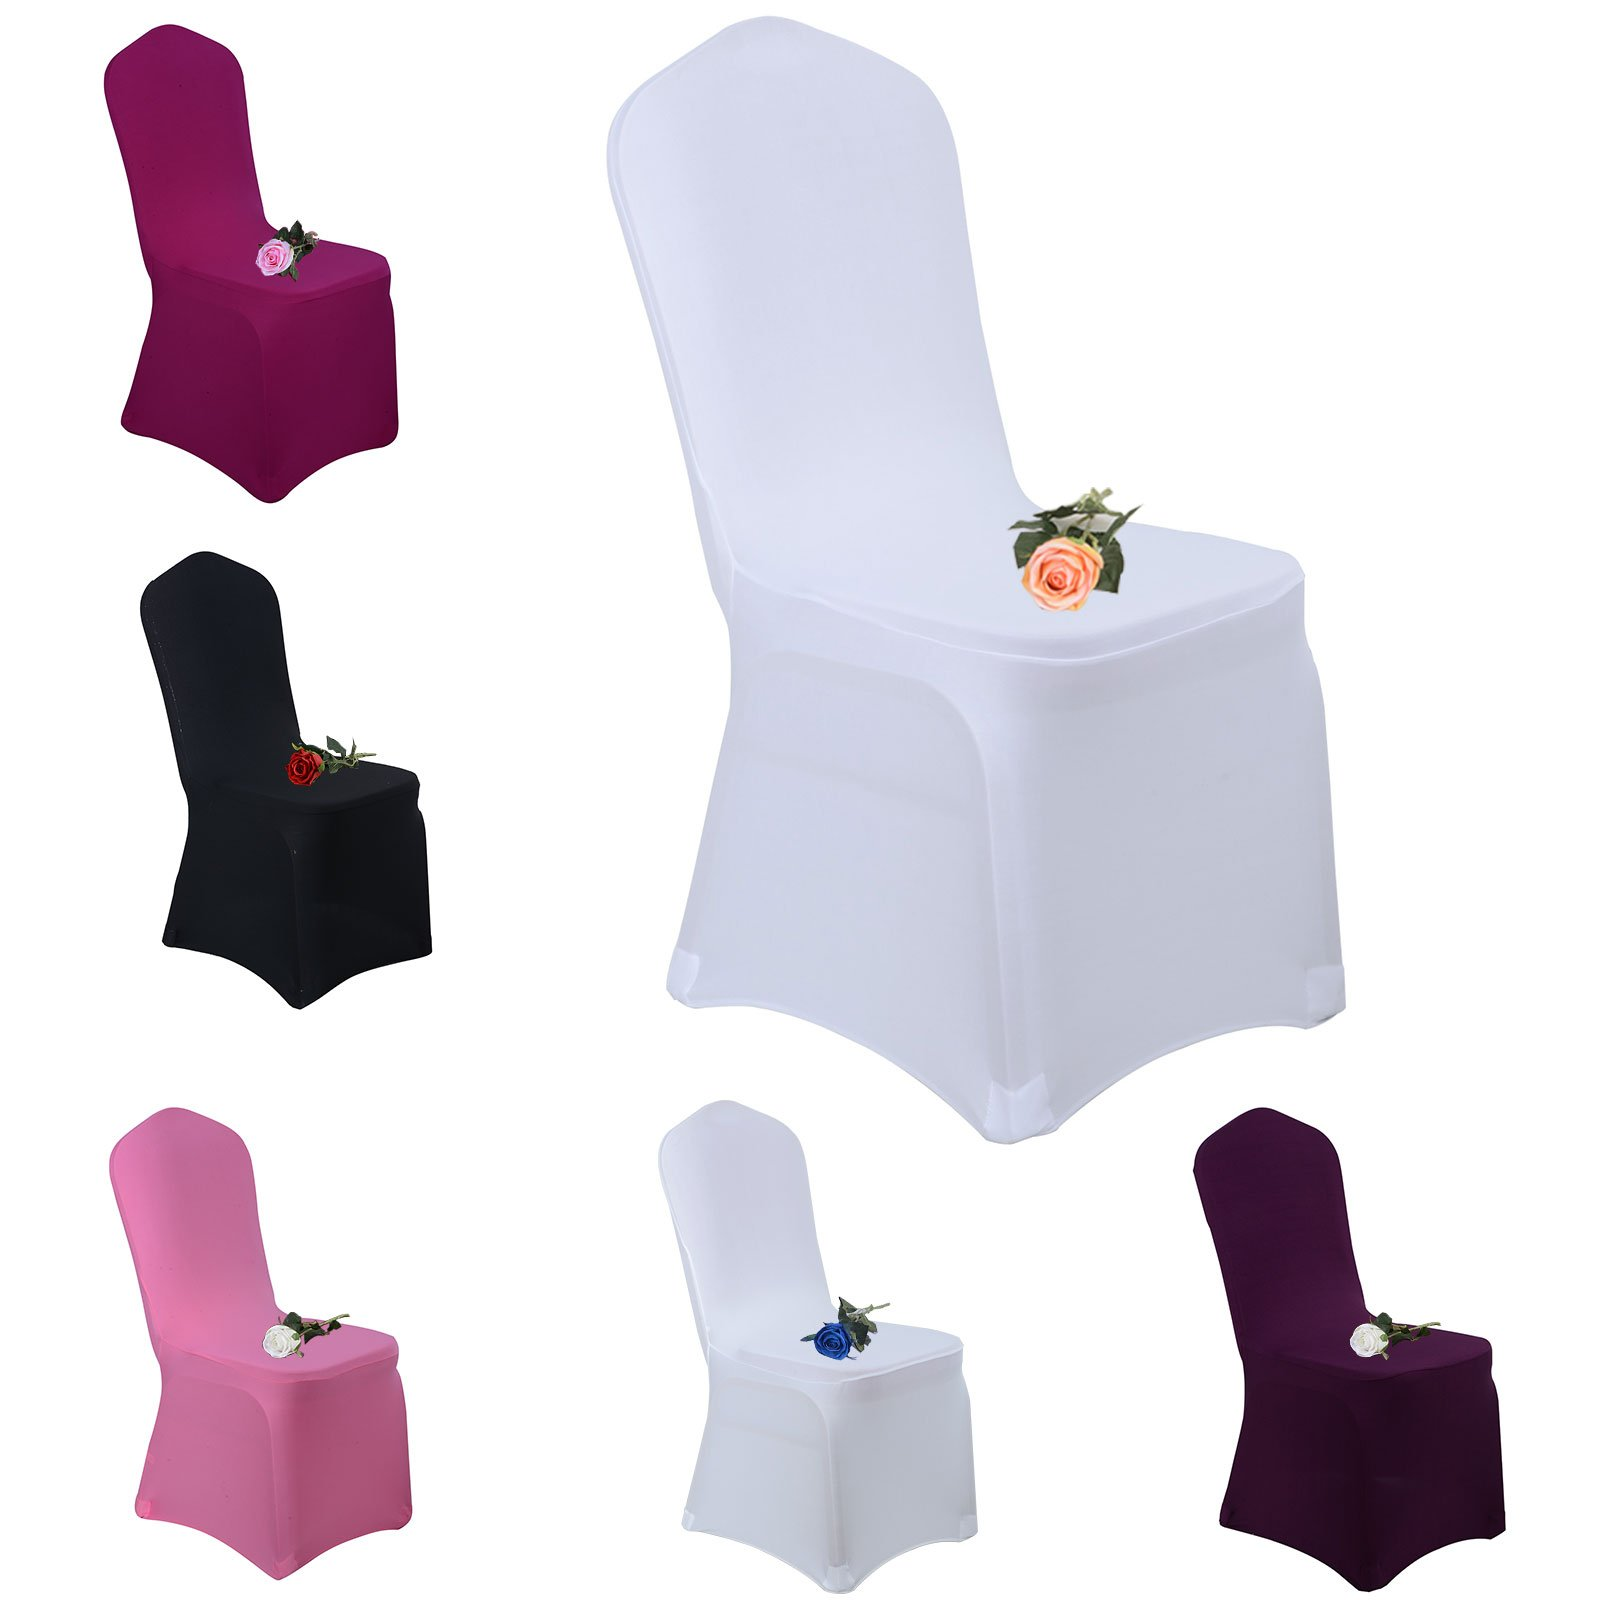 Voilamart Dinning Chair Covers Set of 50pcs Polyester Spandex Stretchable Banquet Chair Slipcover for Wedding Party Dining - White